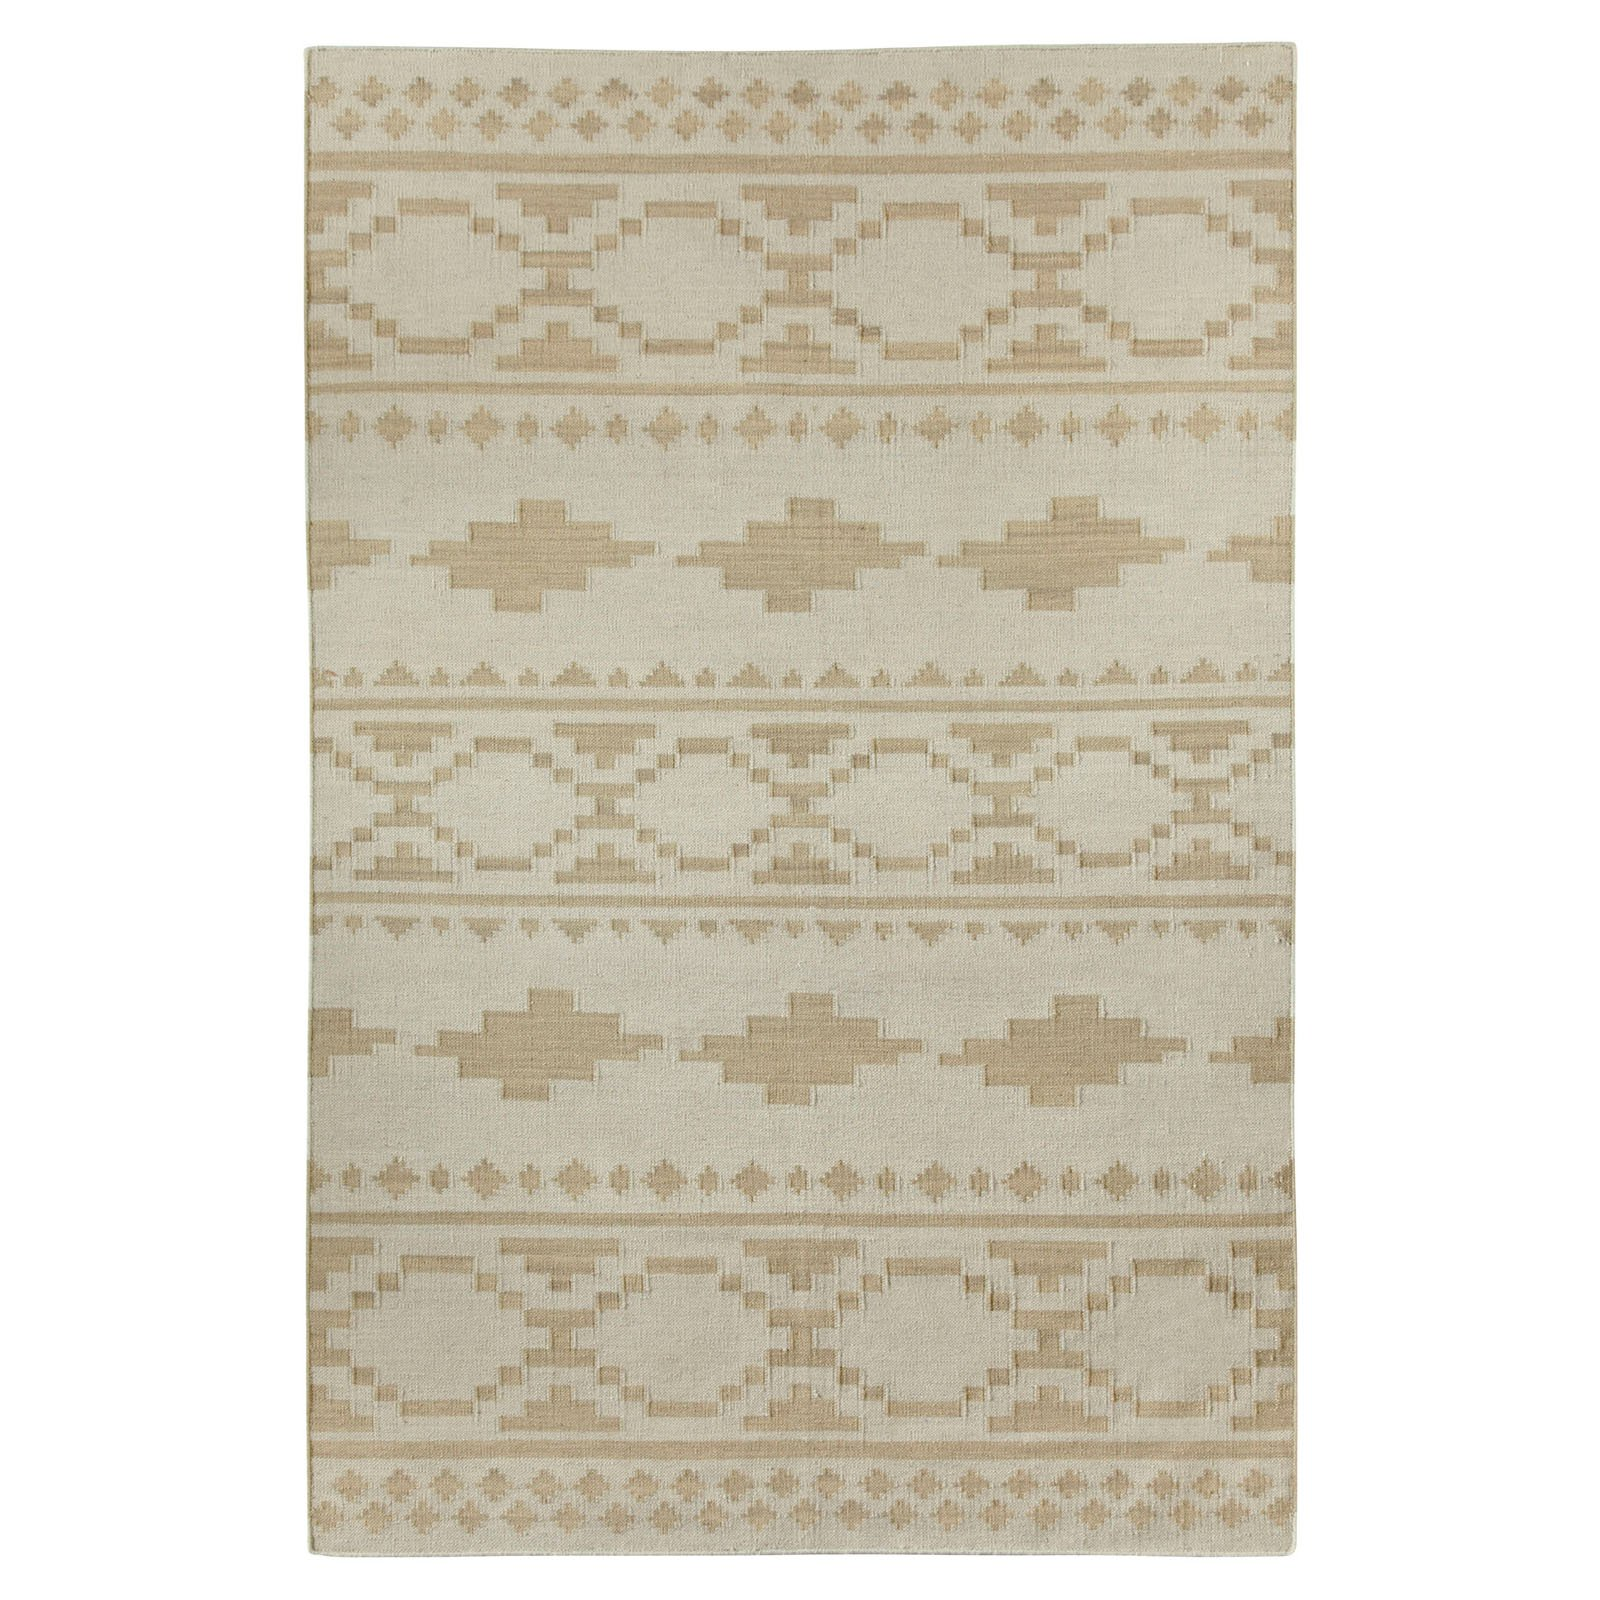 Capel Heirs 3630RS Area Rug - 5 x 8 ft. - Beige